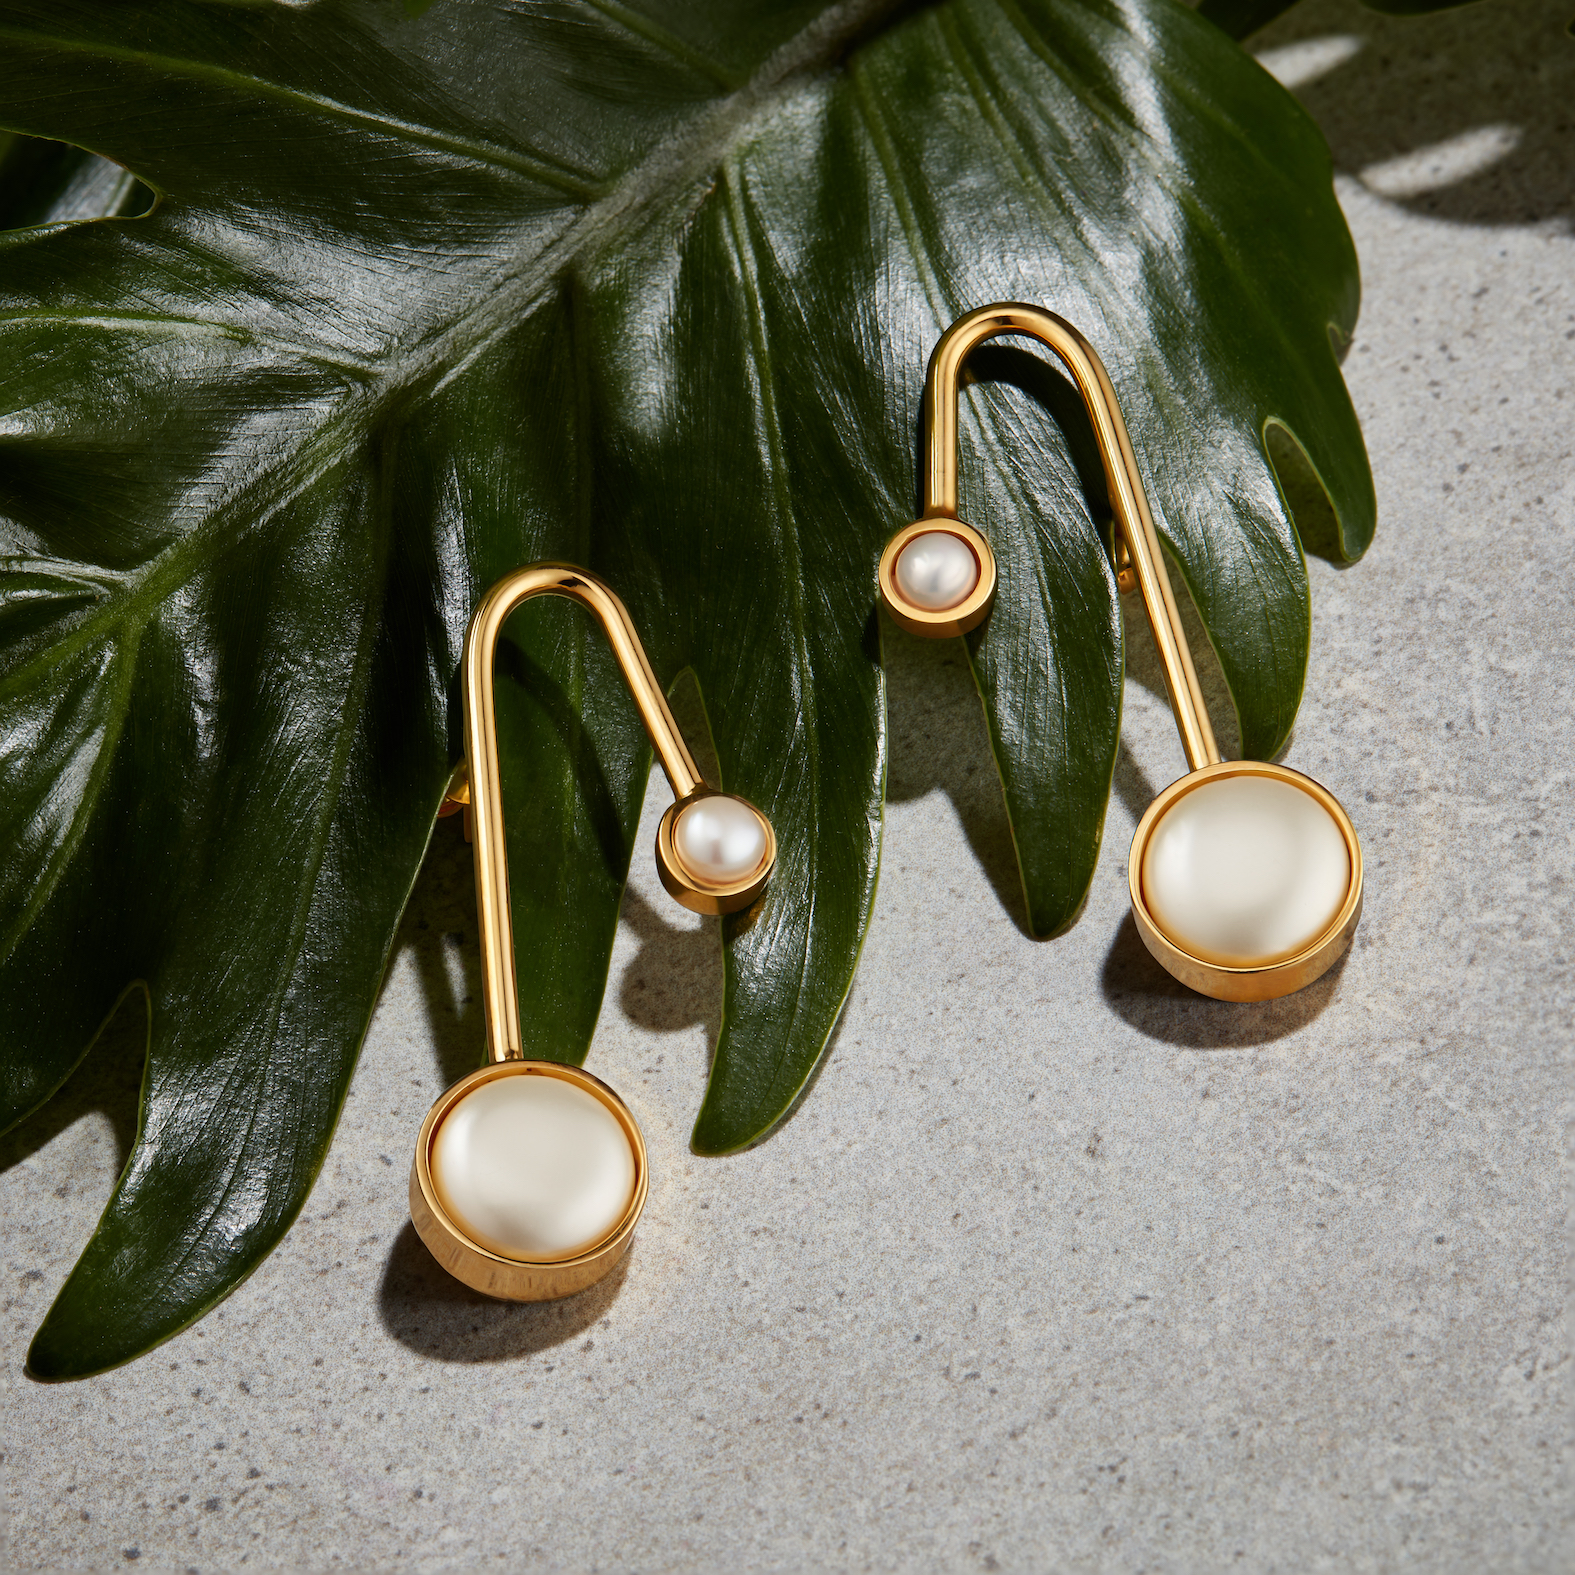 Xochi Petite Earrings, Two Pearls by Jill Hopkins Jewellery on curated-crowd.com